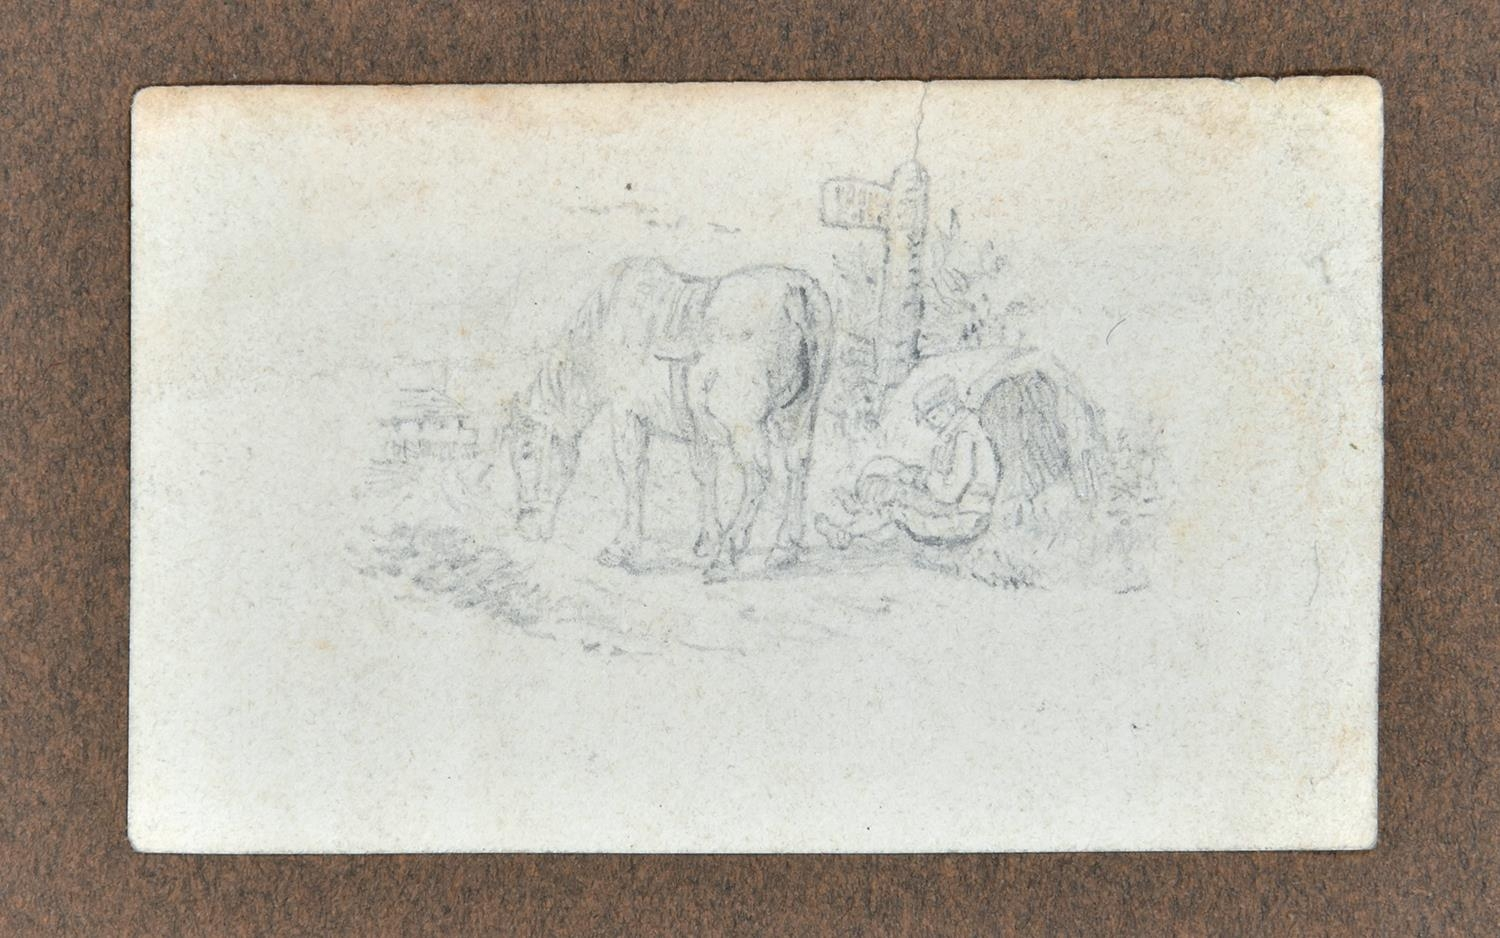 Hunting. Paget (Guy) ' The Melton Mowbray of John Ferneley, edition de luxe on handmade paper with - Image 2 of 2